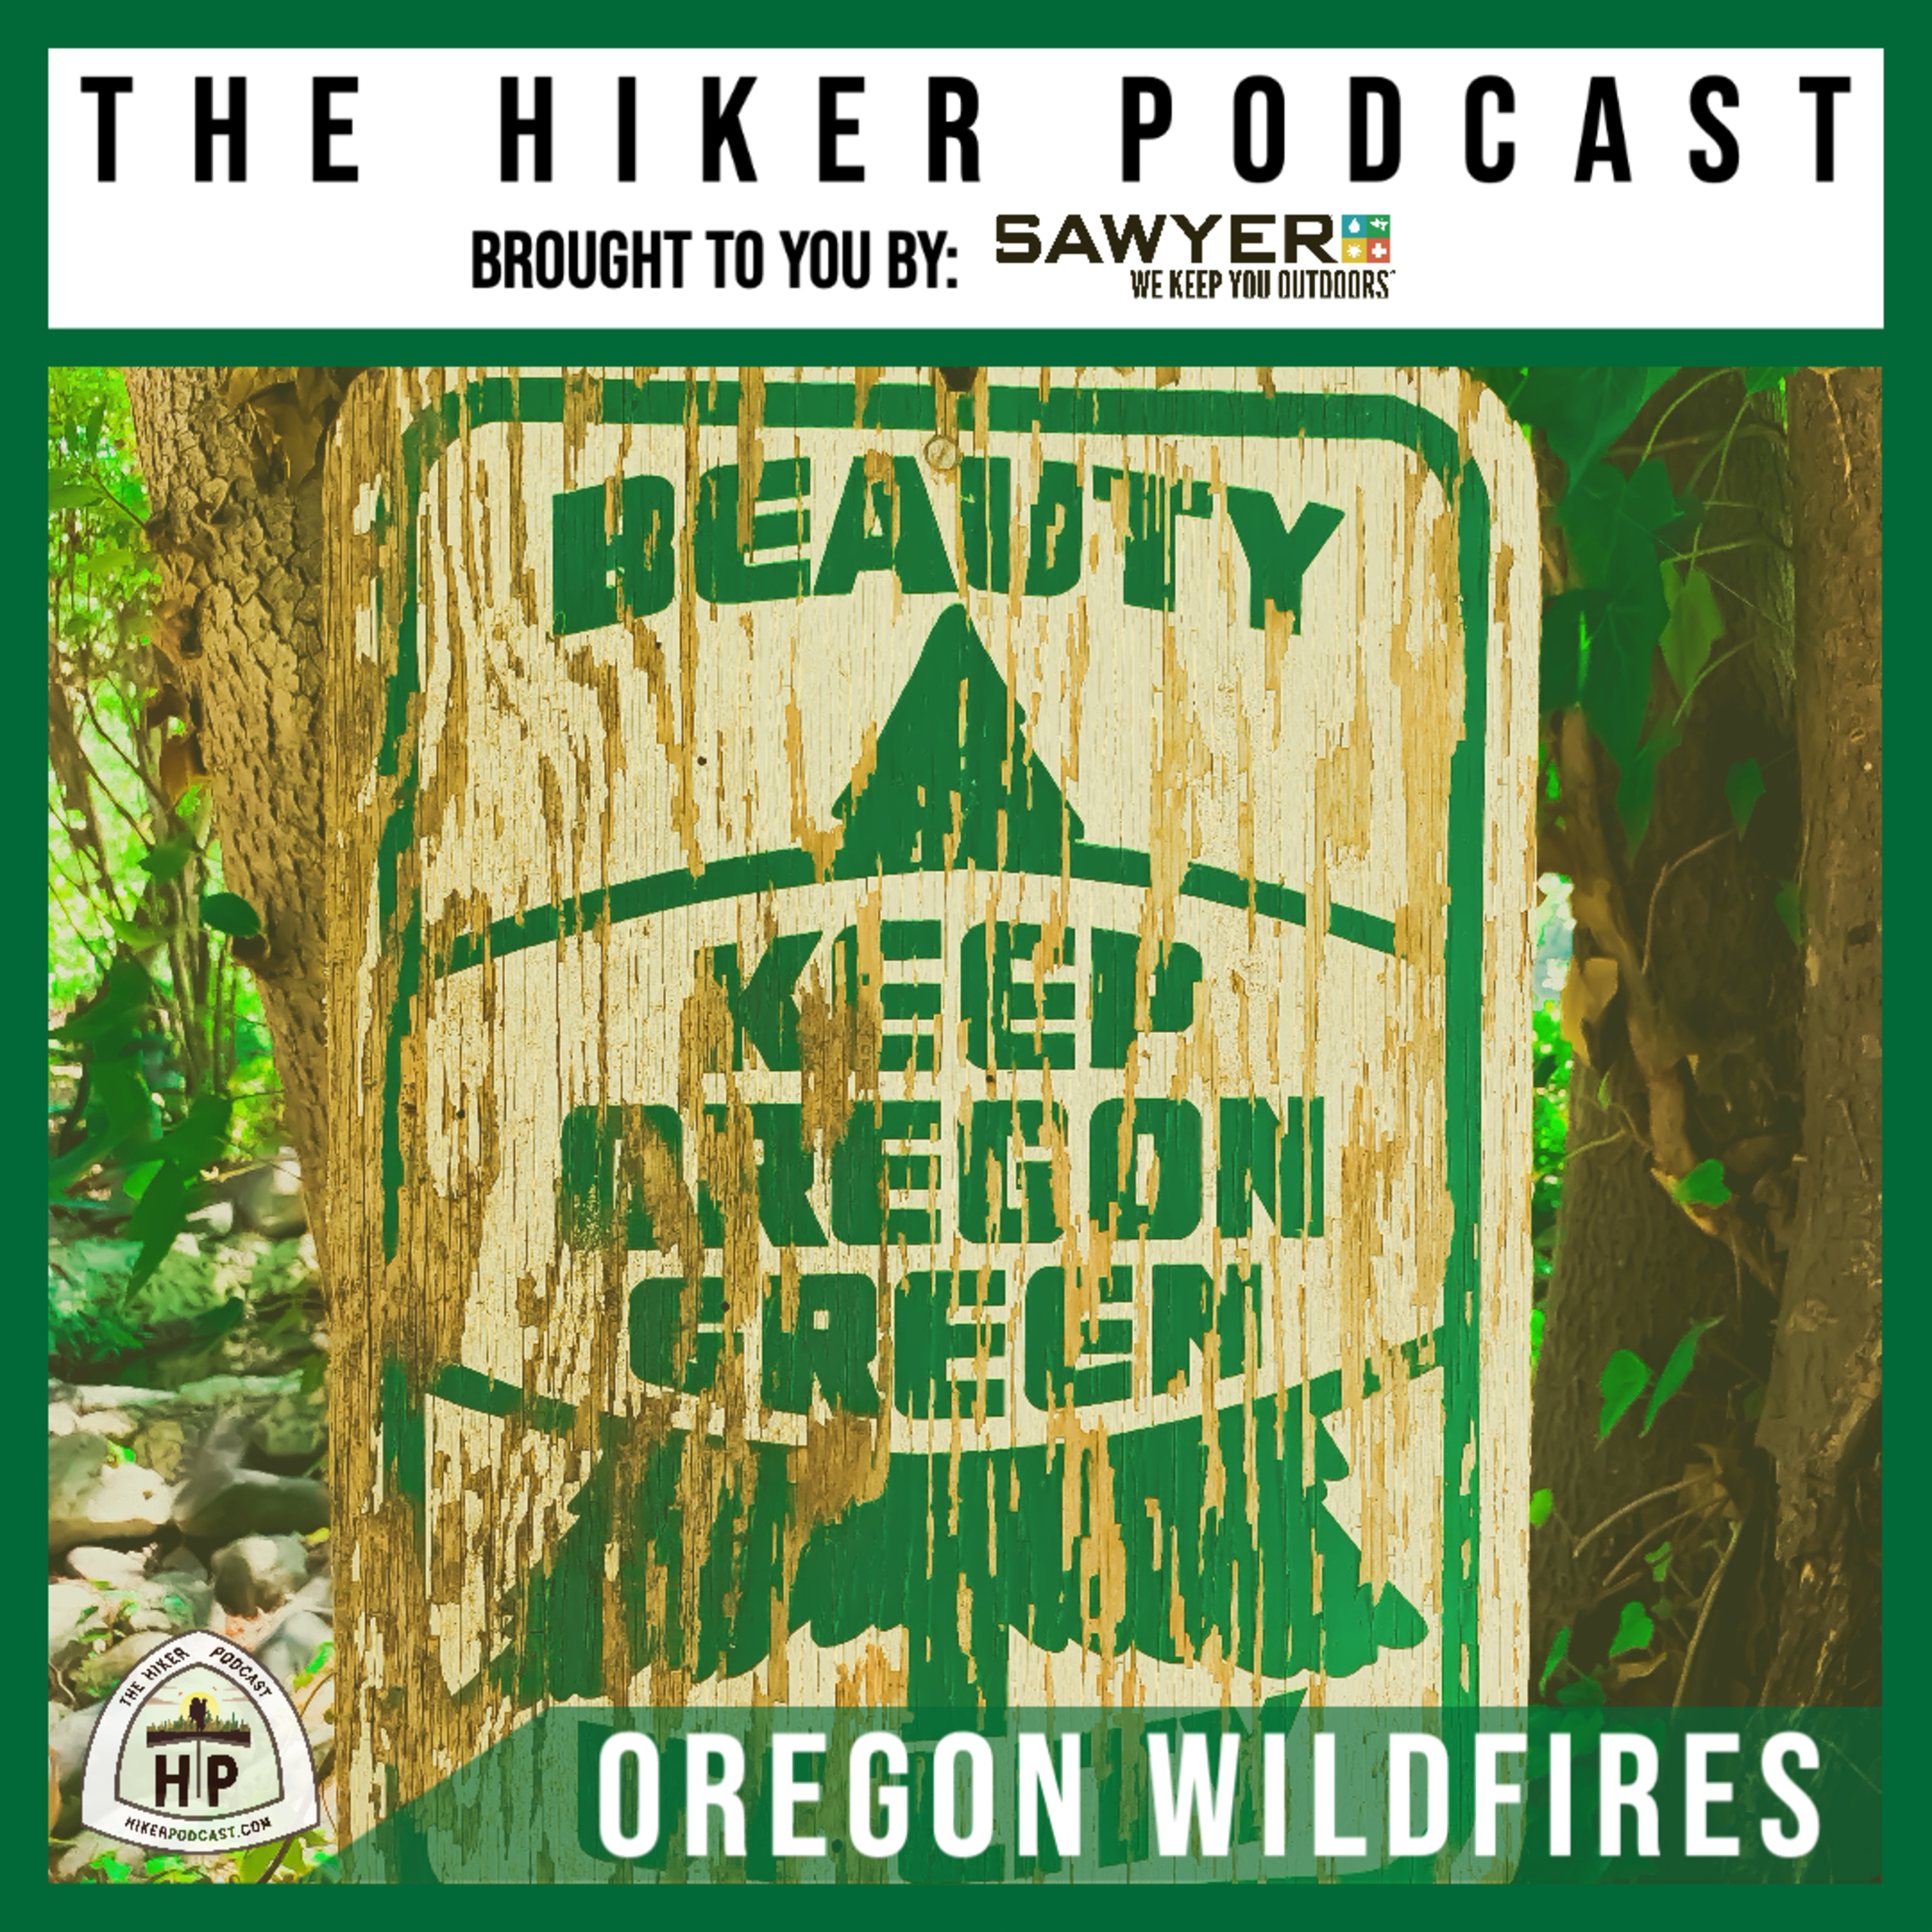 """Oregon Wildfires: A Conversation w/ Kristen Babbs of the Oregon Department of Forestry's """"Keep Oregon Green"""" Program 